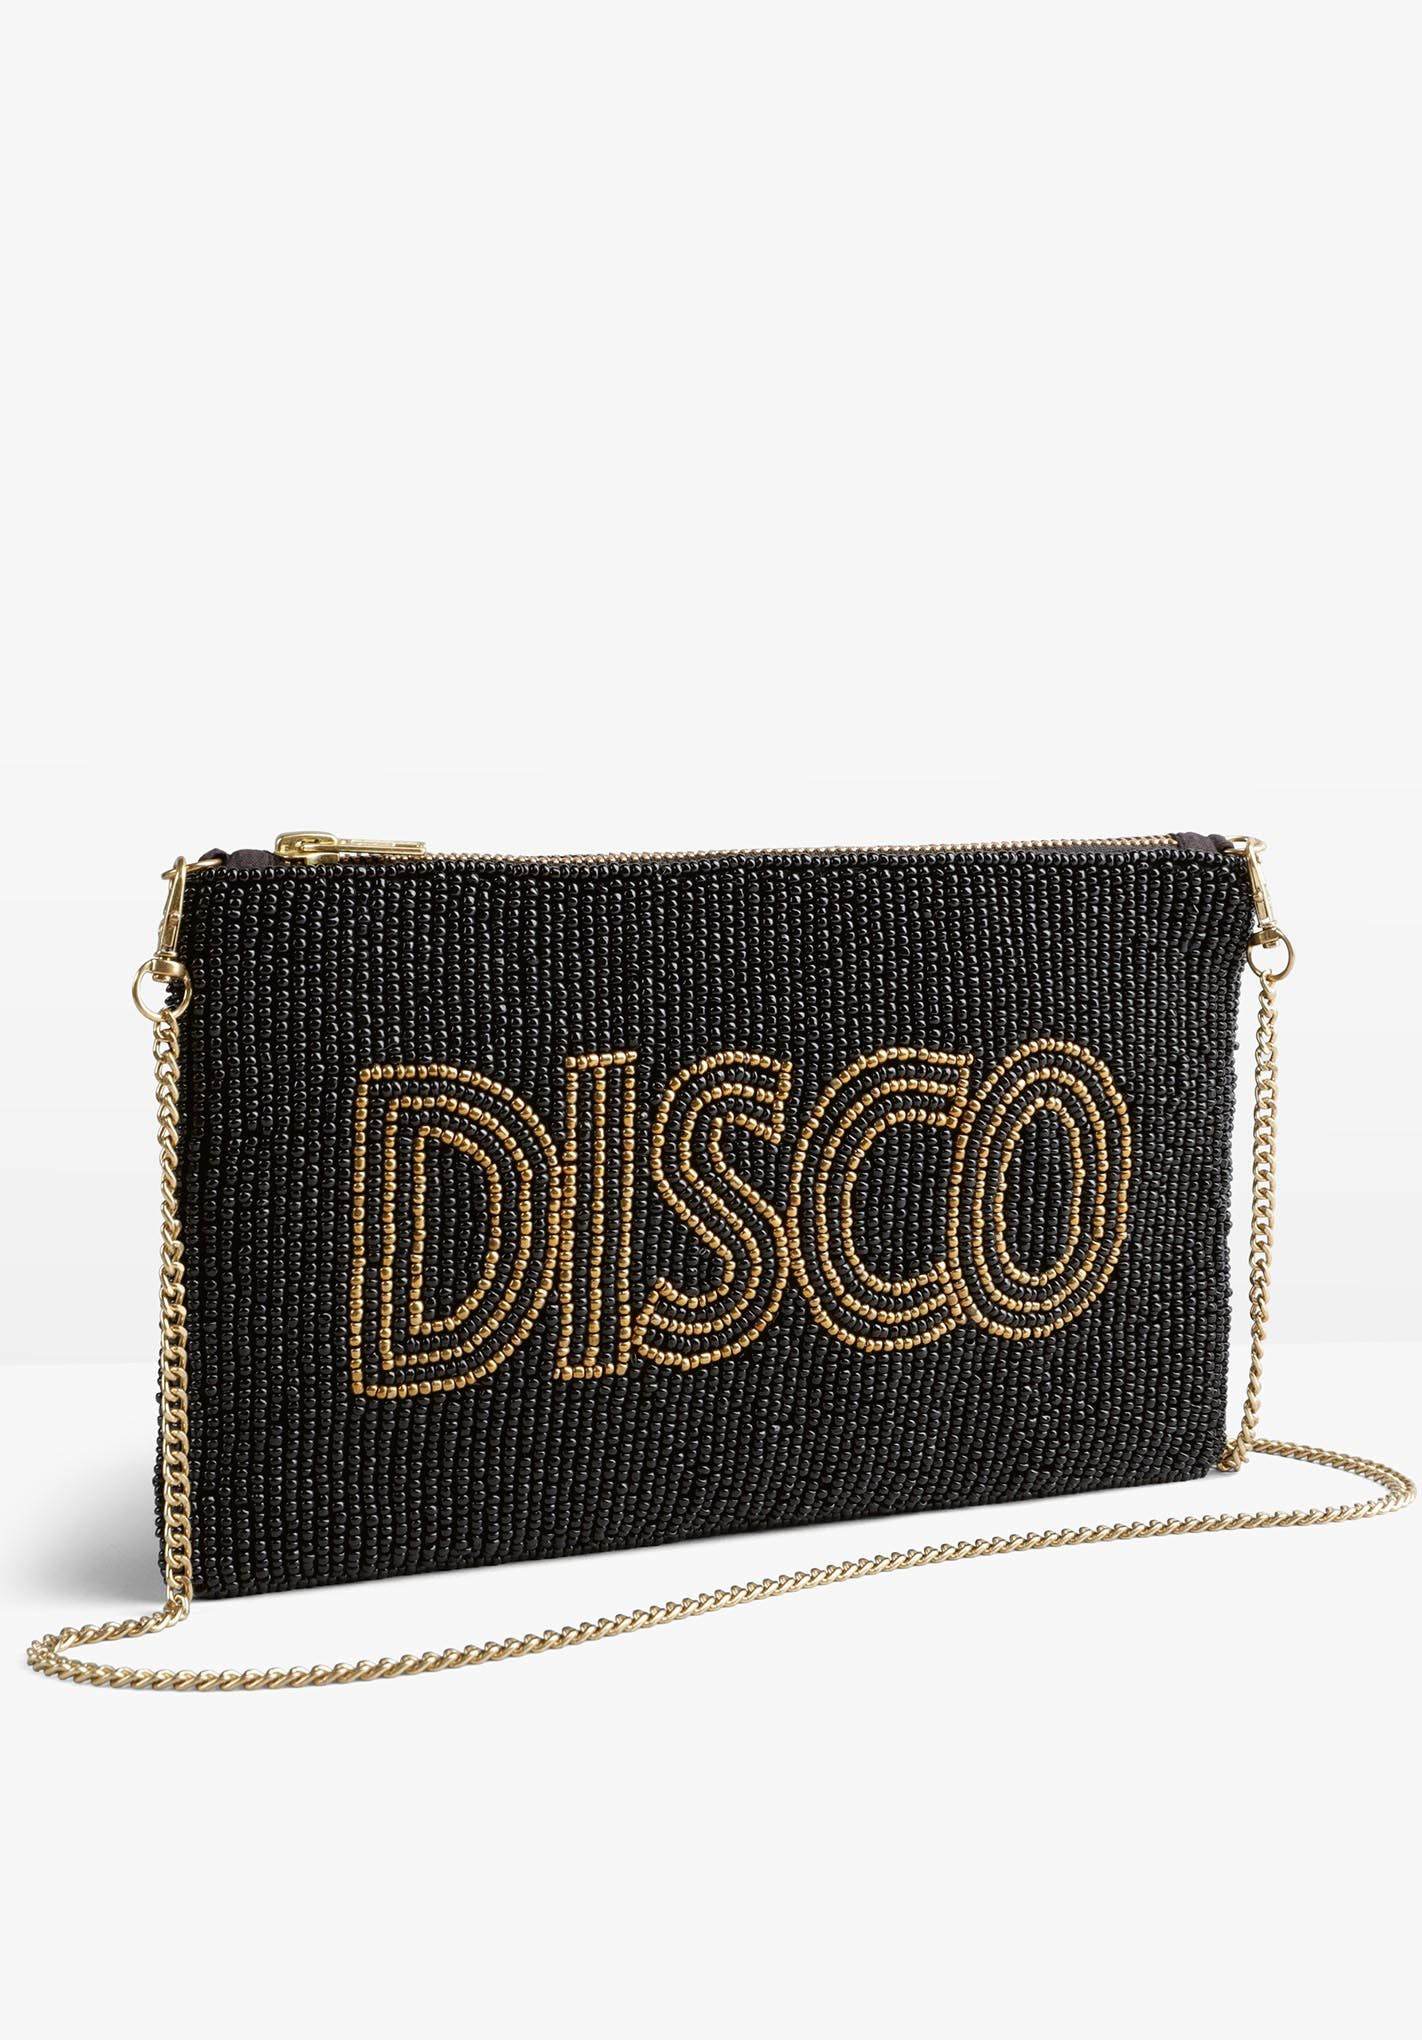 Hush Disco Beaded Clutch £55